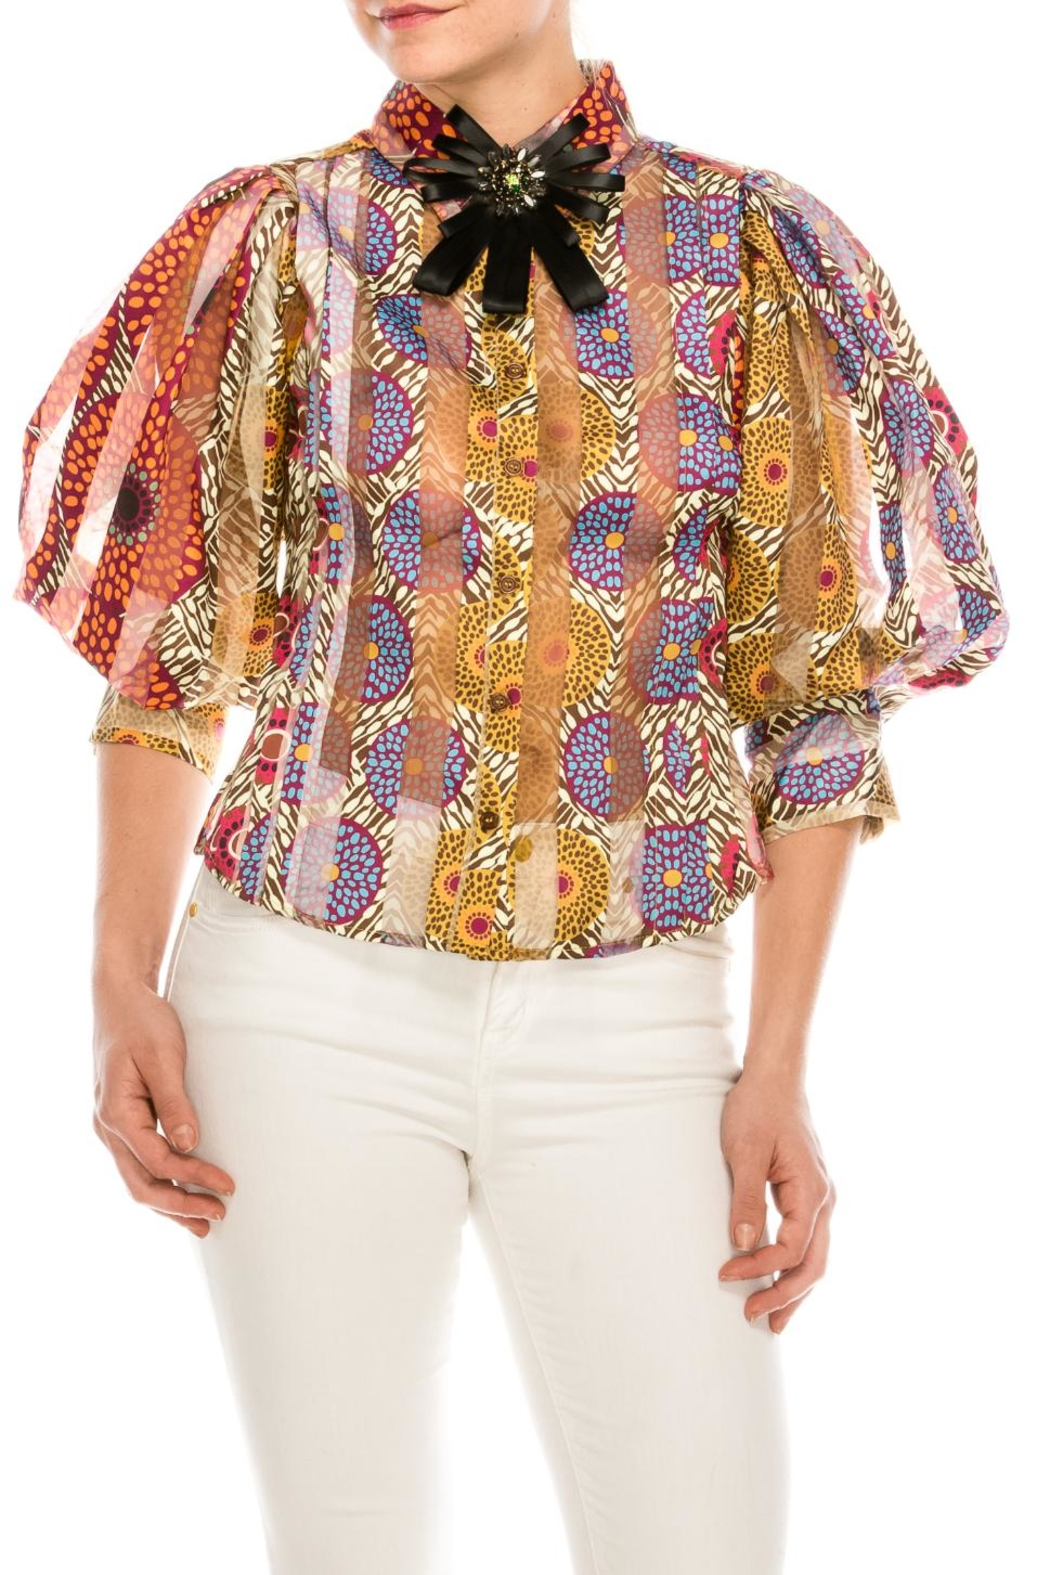 30dcebb79cacb cq by cq Colorful Brooch Blouse from New York by Dor L Dor — Shoptiques